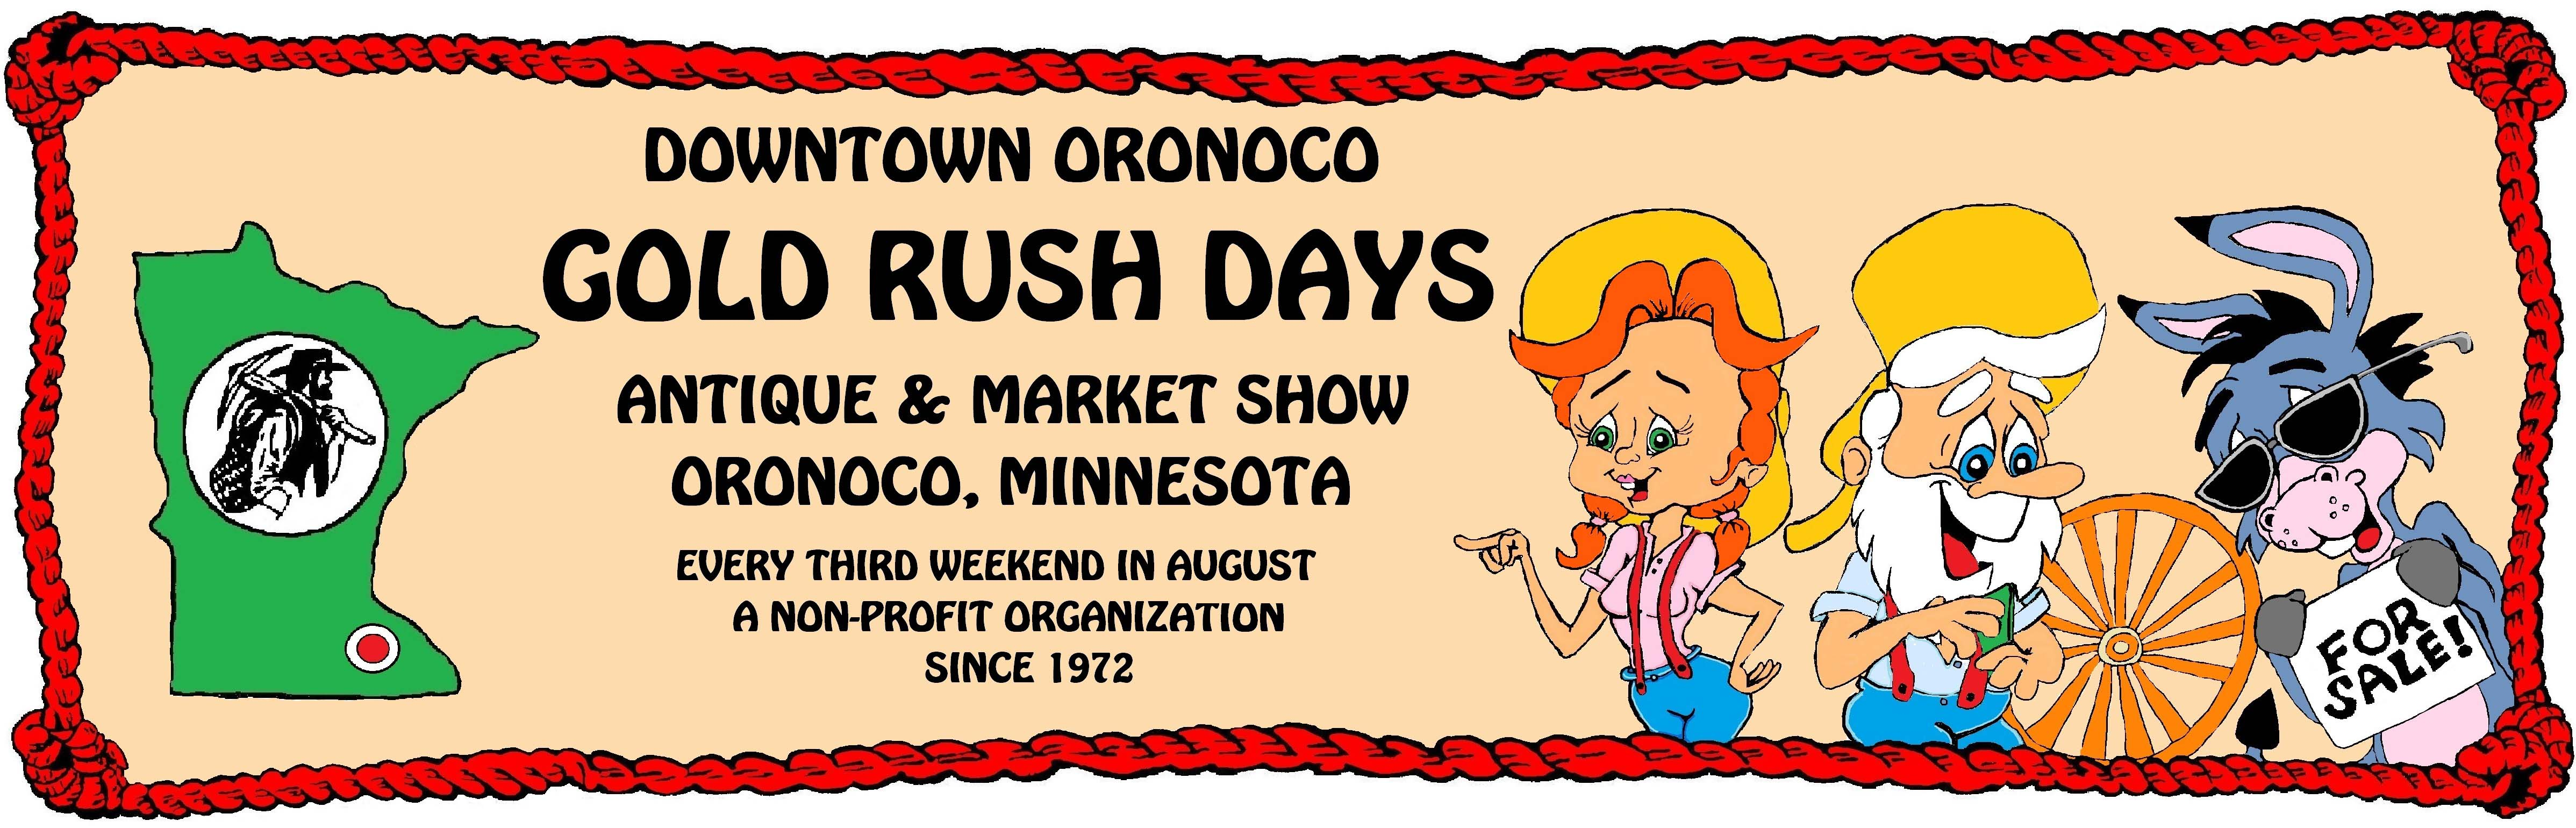 Downtown Oronoco Gold Rush Days